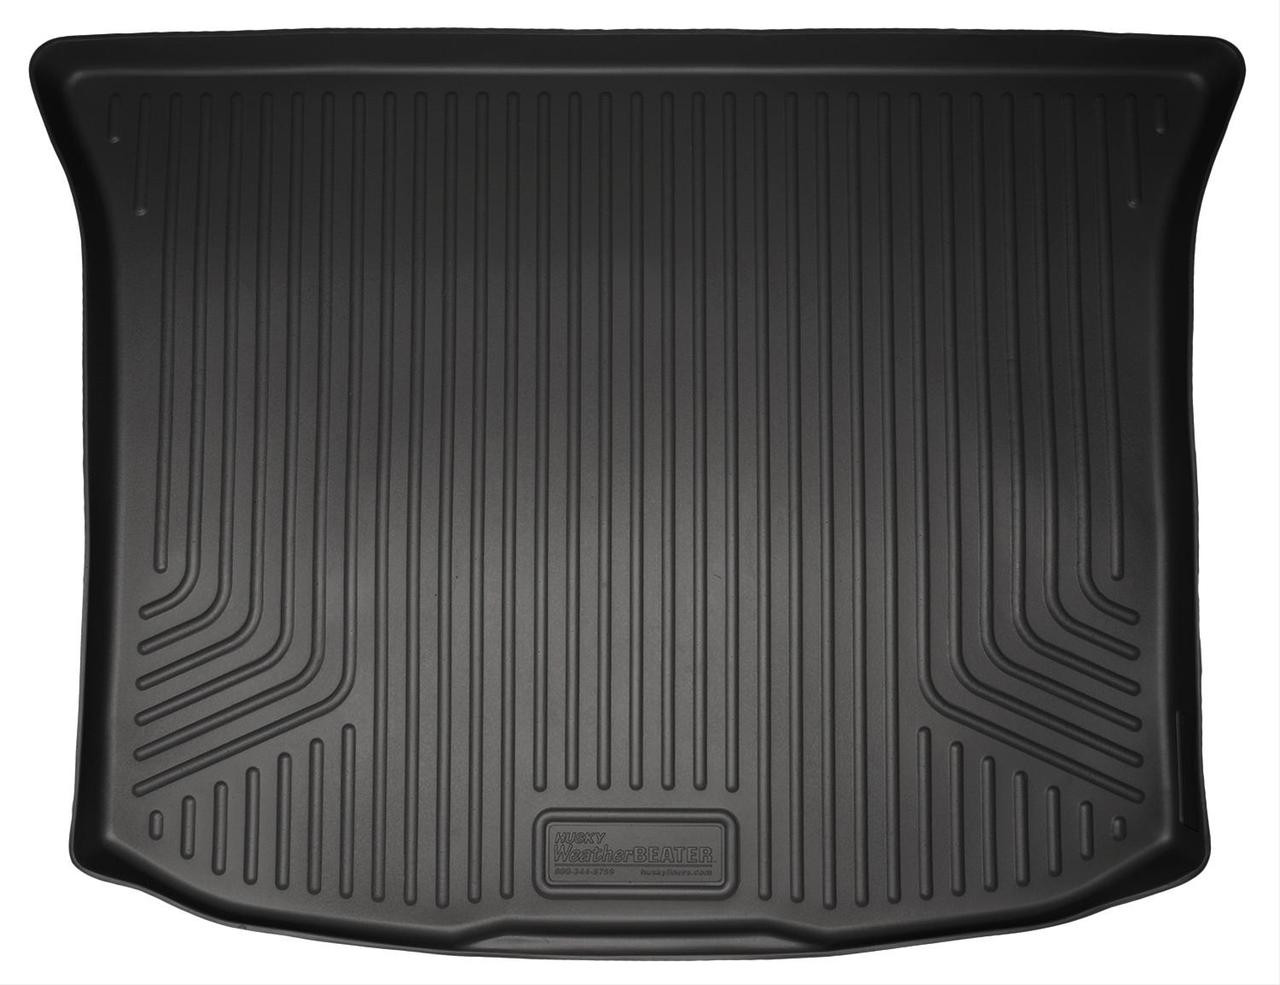 07-14 EDGE/MKX CARGO LINER WEATHERBEATER BLACK